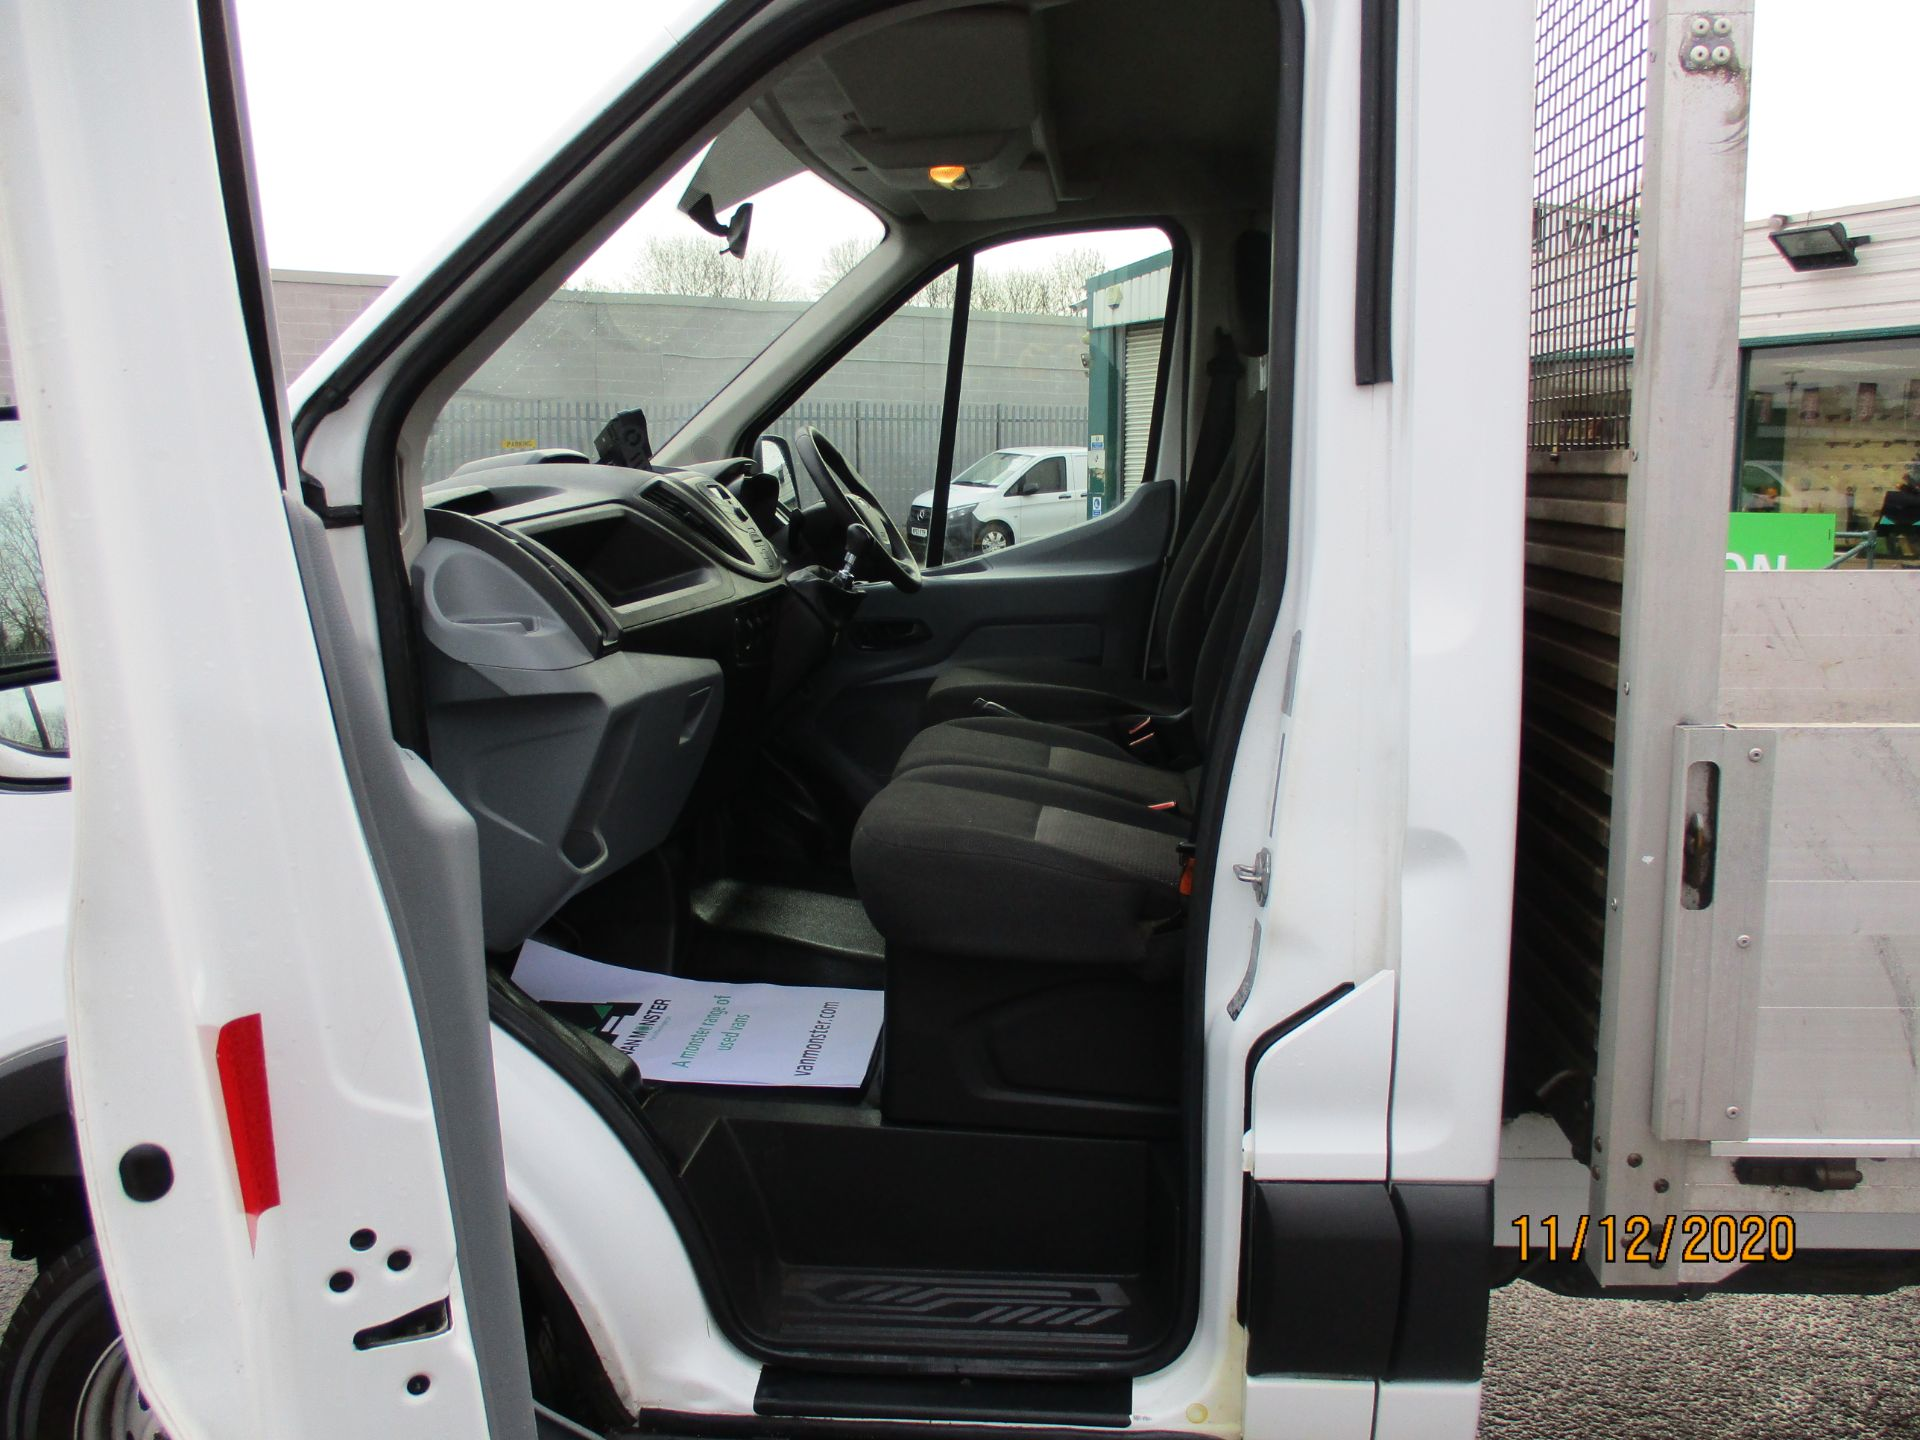 2016 Ford Transit 2.2 Tdci 125Ps Chassis Cab (FL66FAK) Image 13